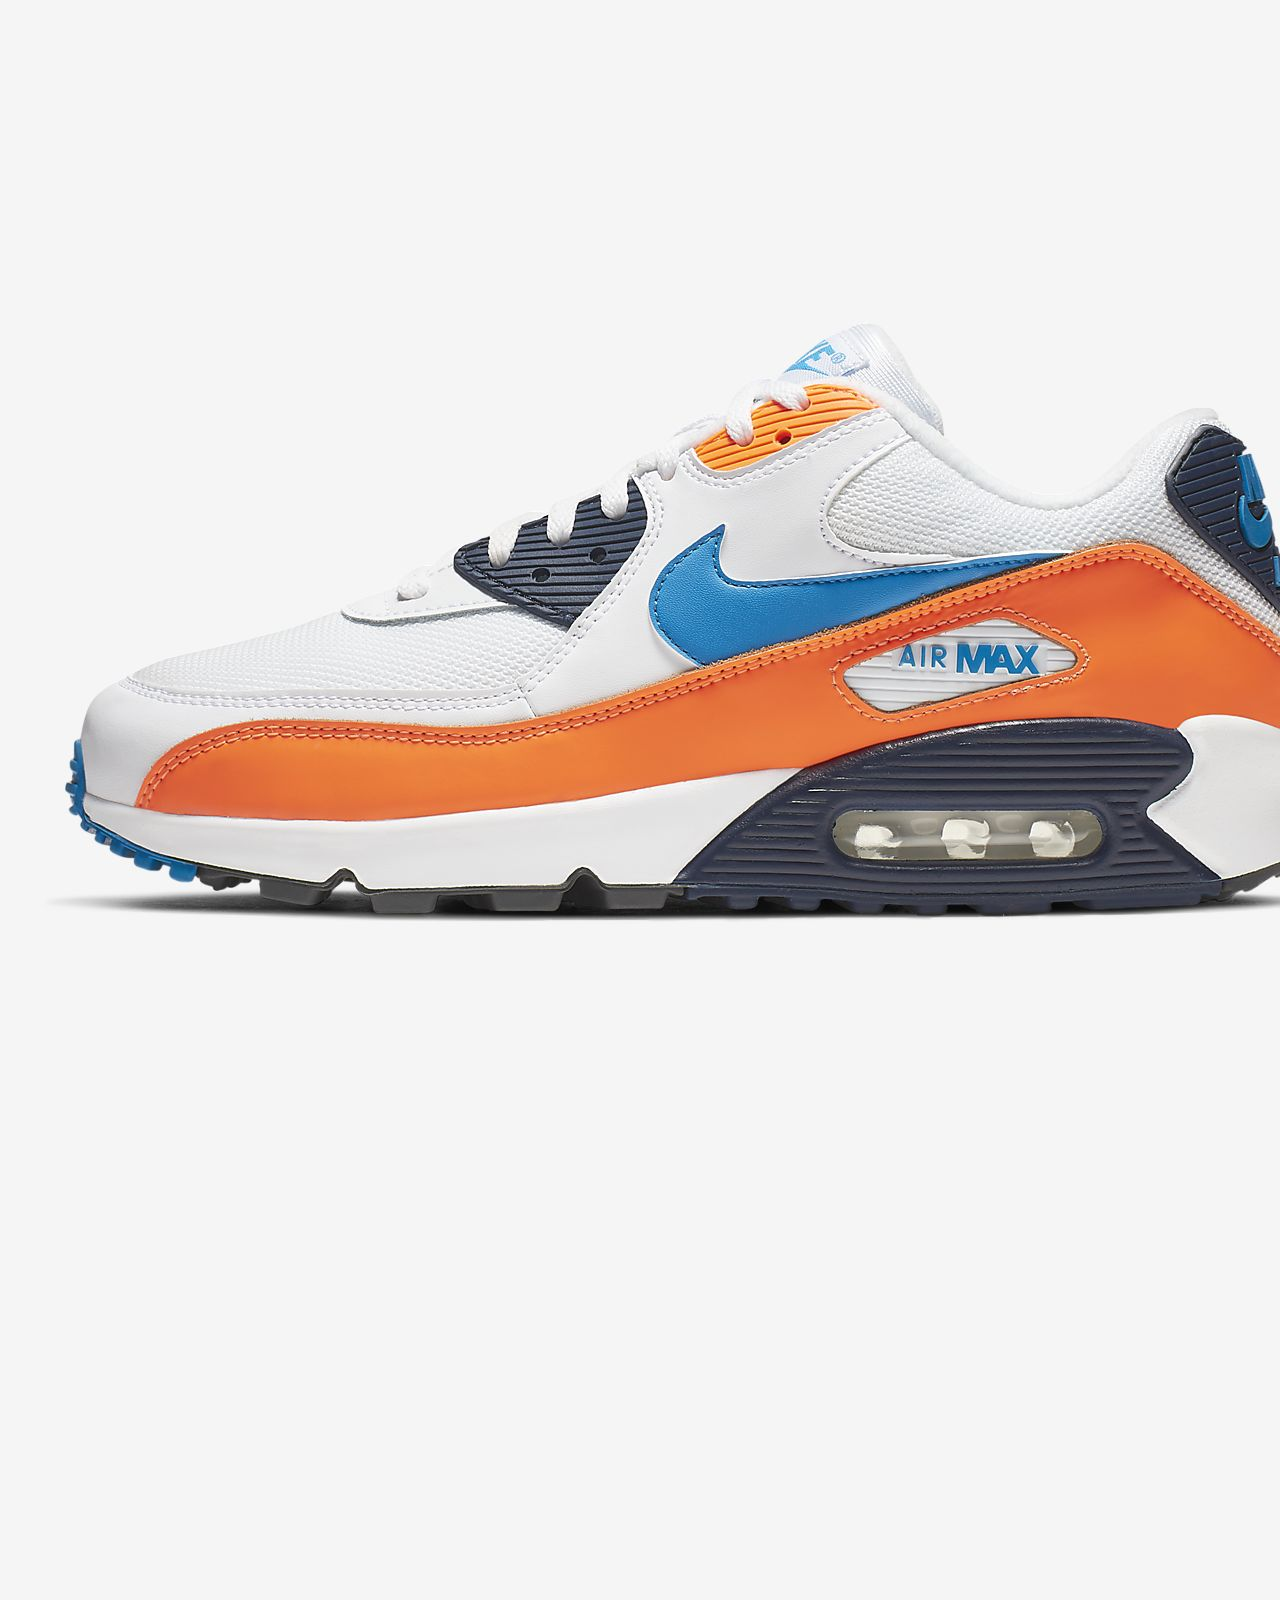 separation shoes 3629b 722e3 ... Nike Air Max 90 Essential Men s Shoe